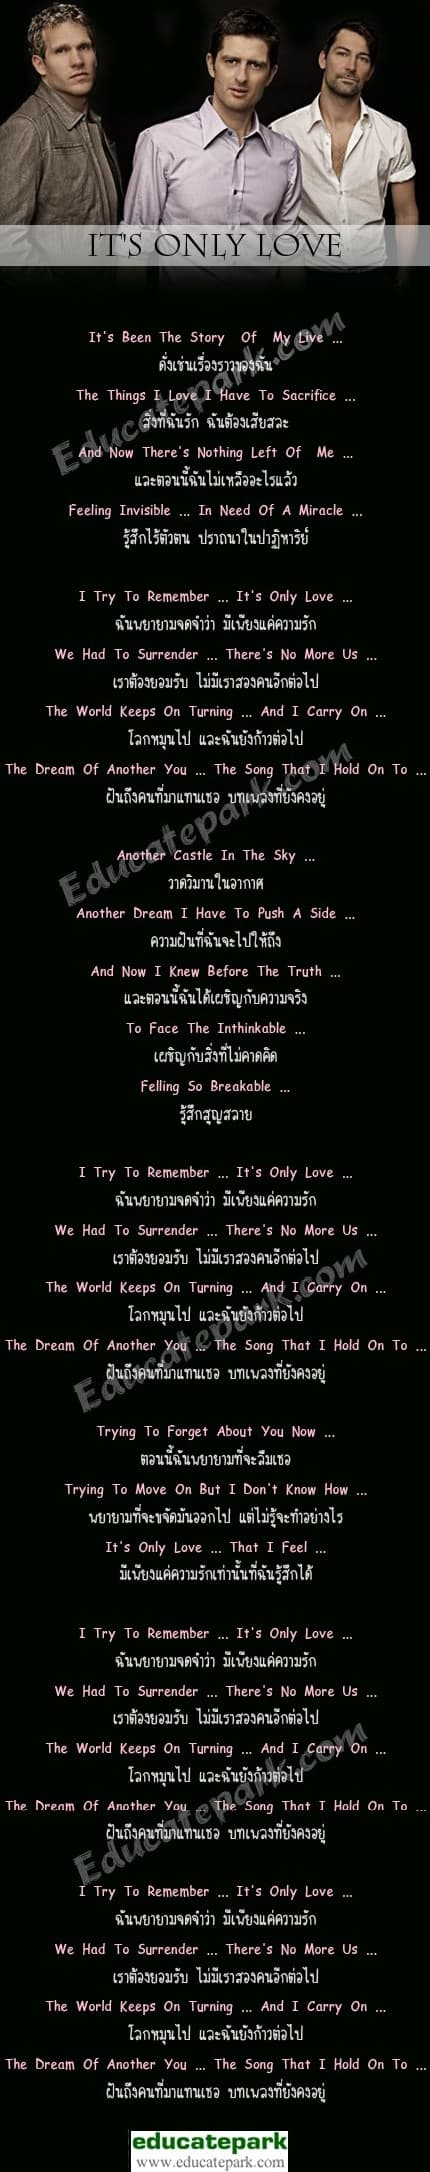 แปลเพลง It's Only Love - Michael Learns To Rock